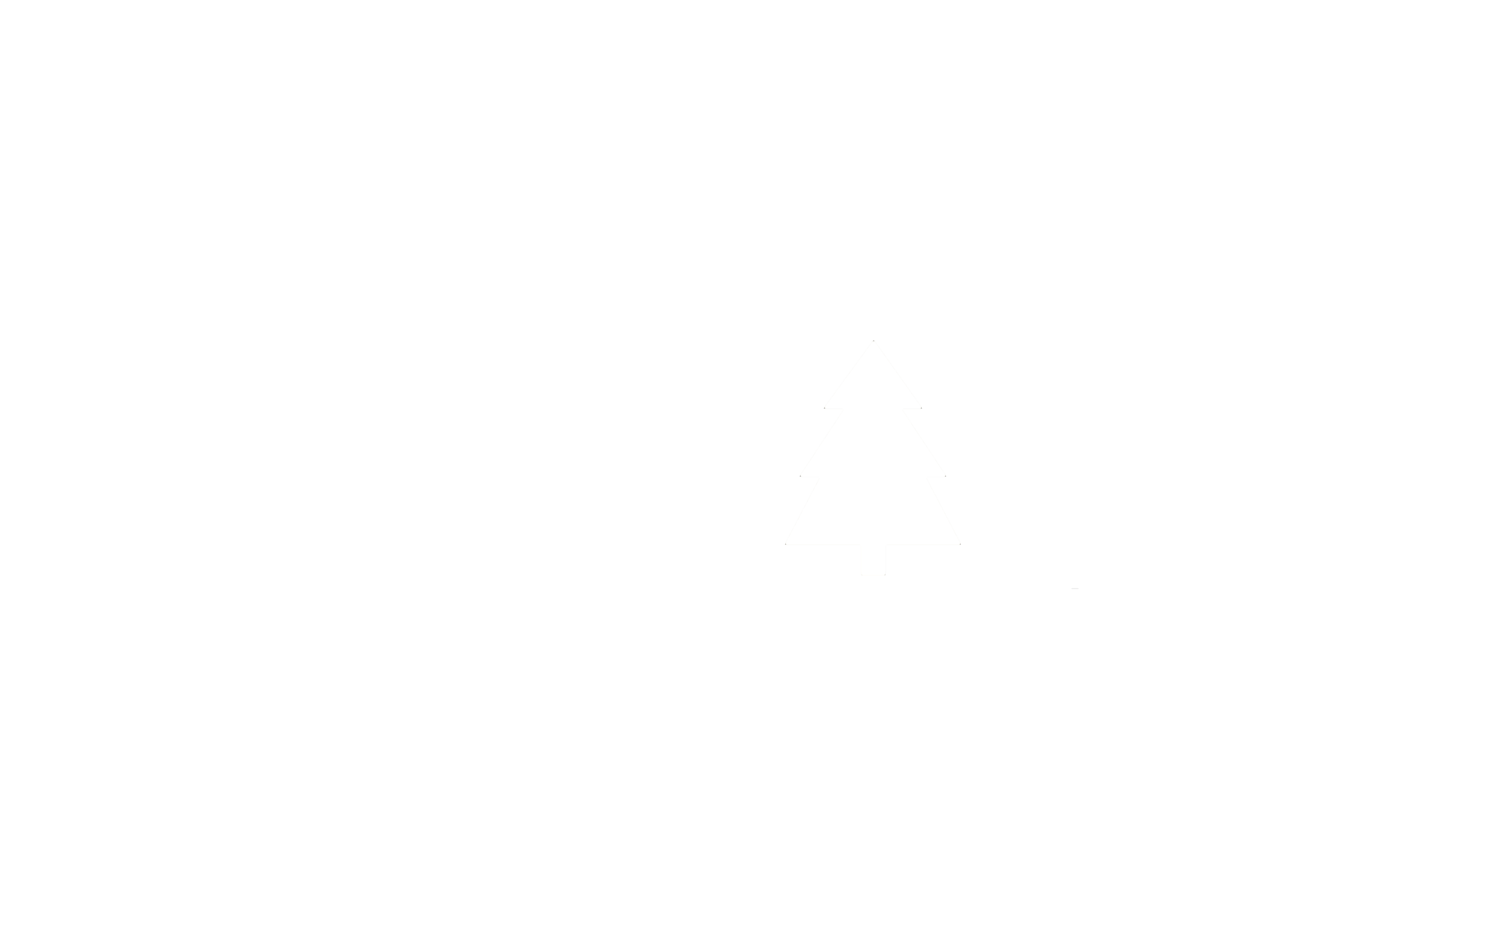 Pleasant Valley Christian Camp